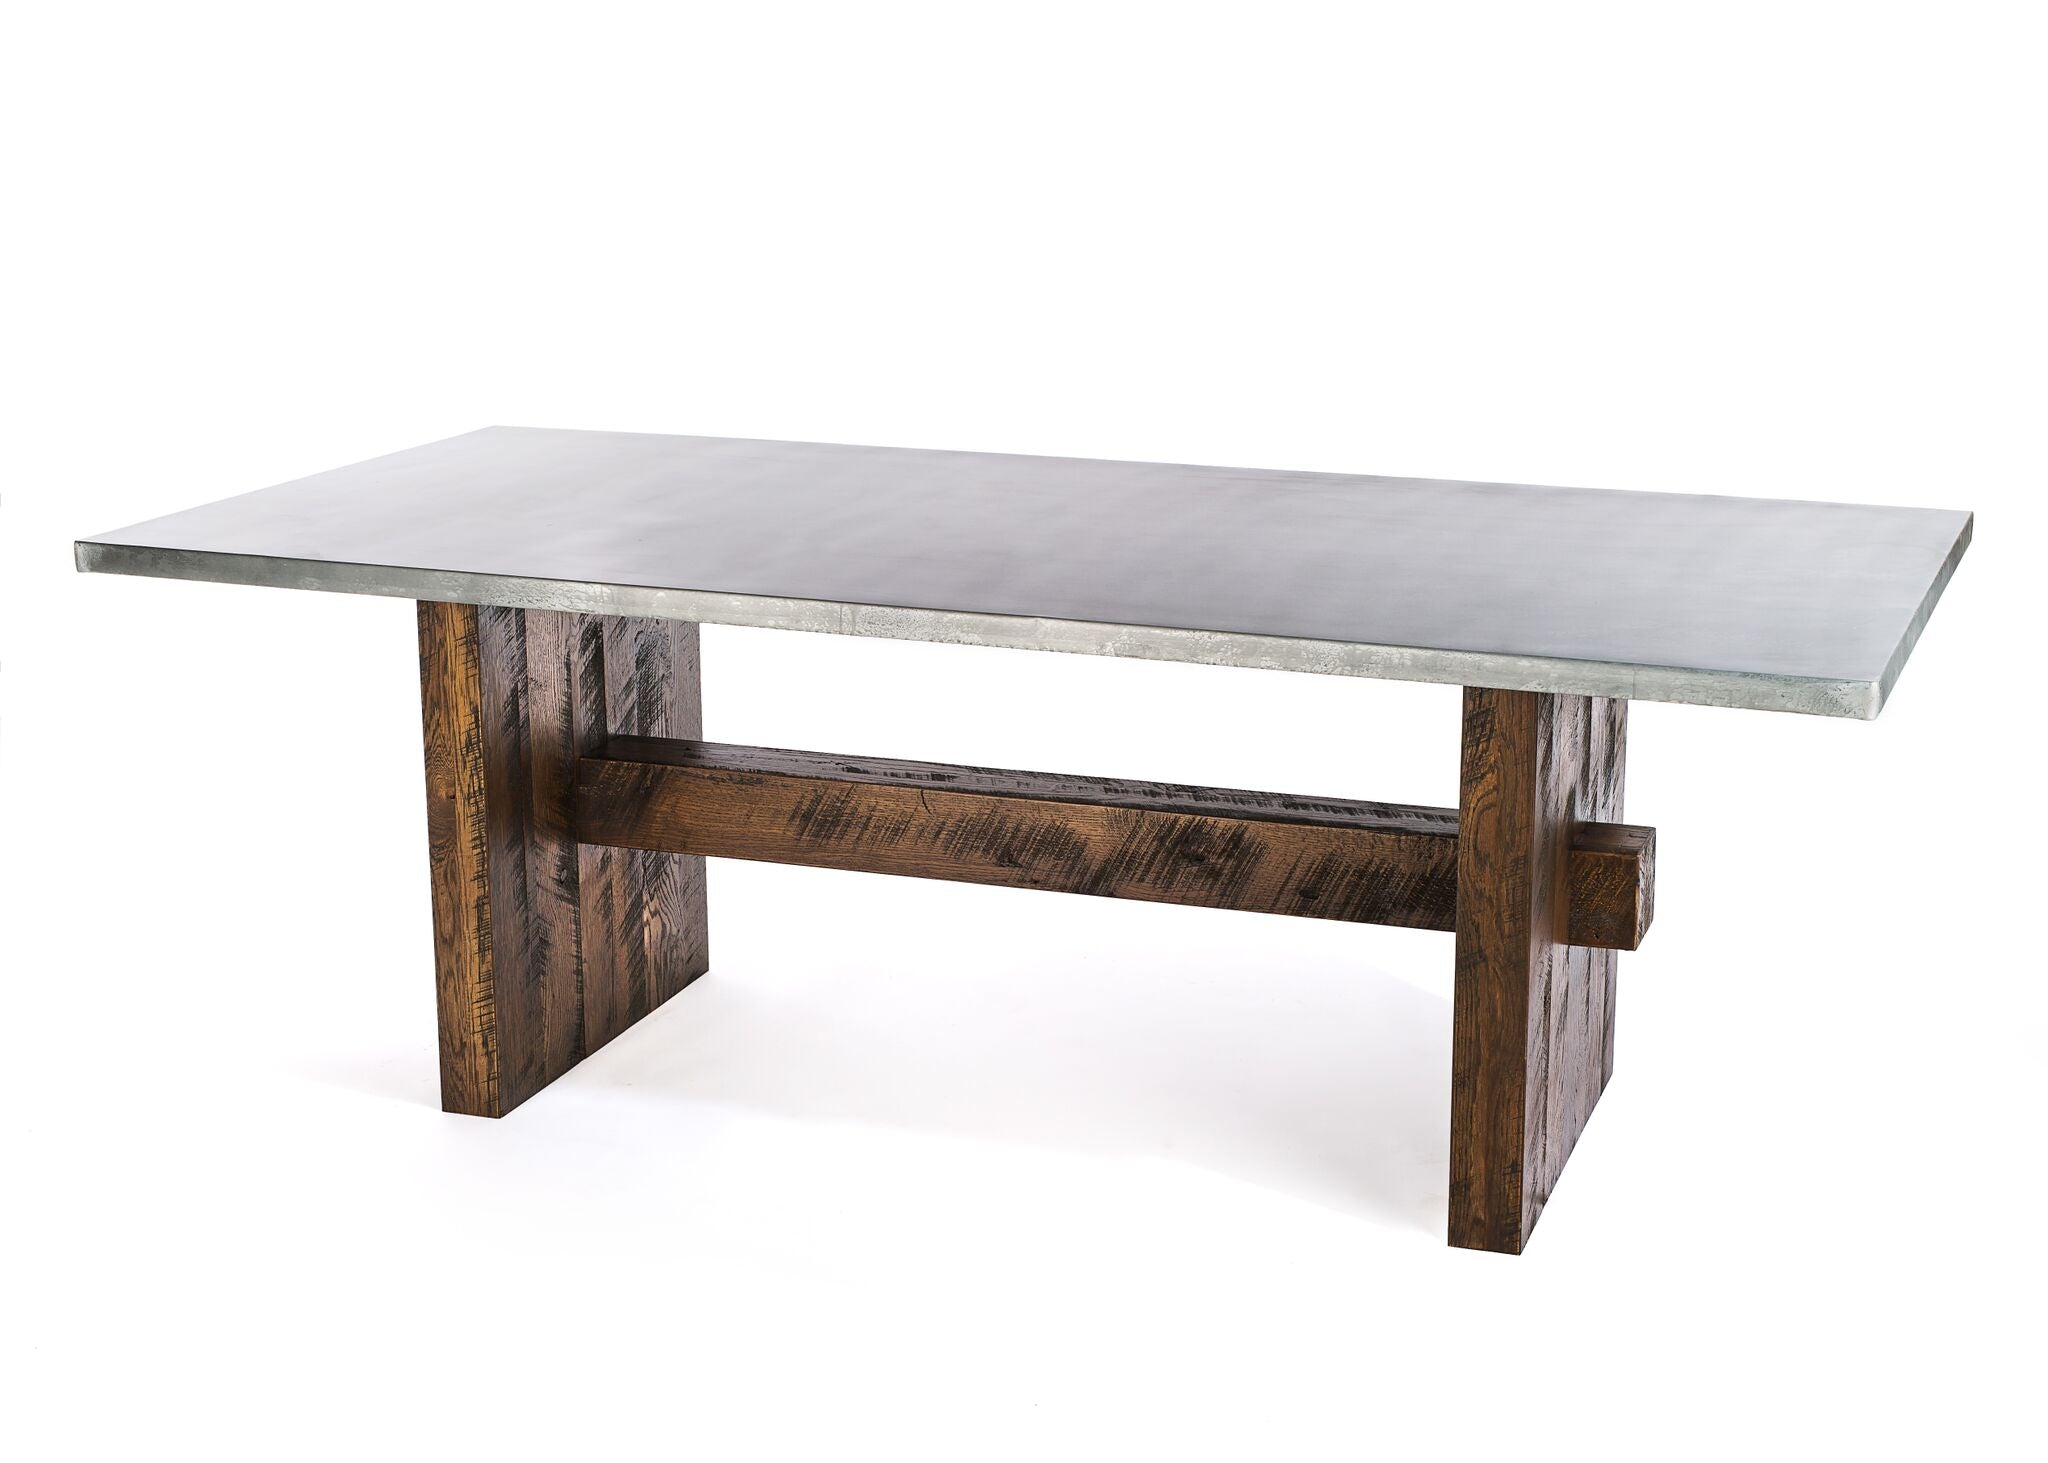 "Zinc Rectangular Table | Redford Trestle Table | CLASSIC | Natural Black Walnut | 60""L 37""W 30""H 